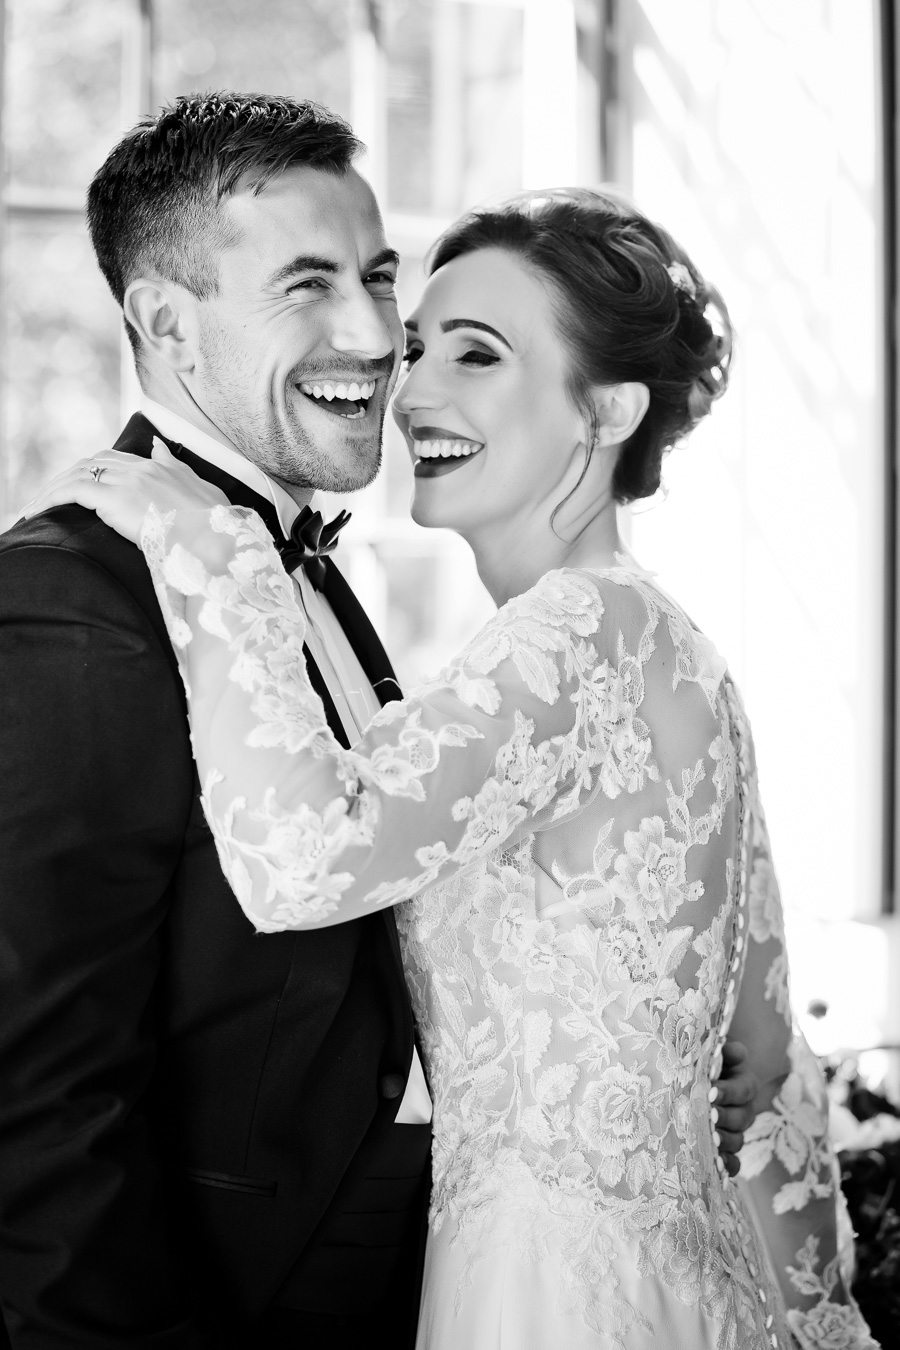 Elegance and glamour, Vanity Fair style. A styled wedding photoshoot from Davenport House. Image Laura May Photography (28)